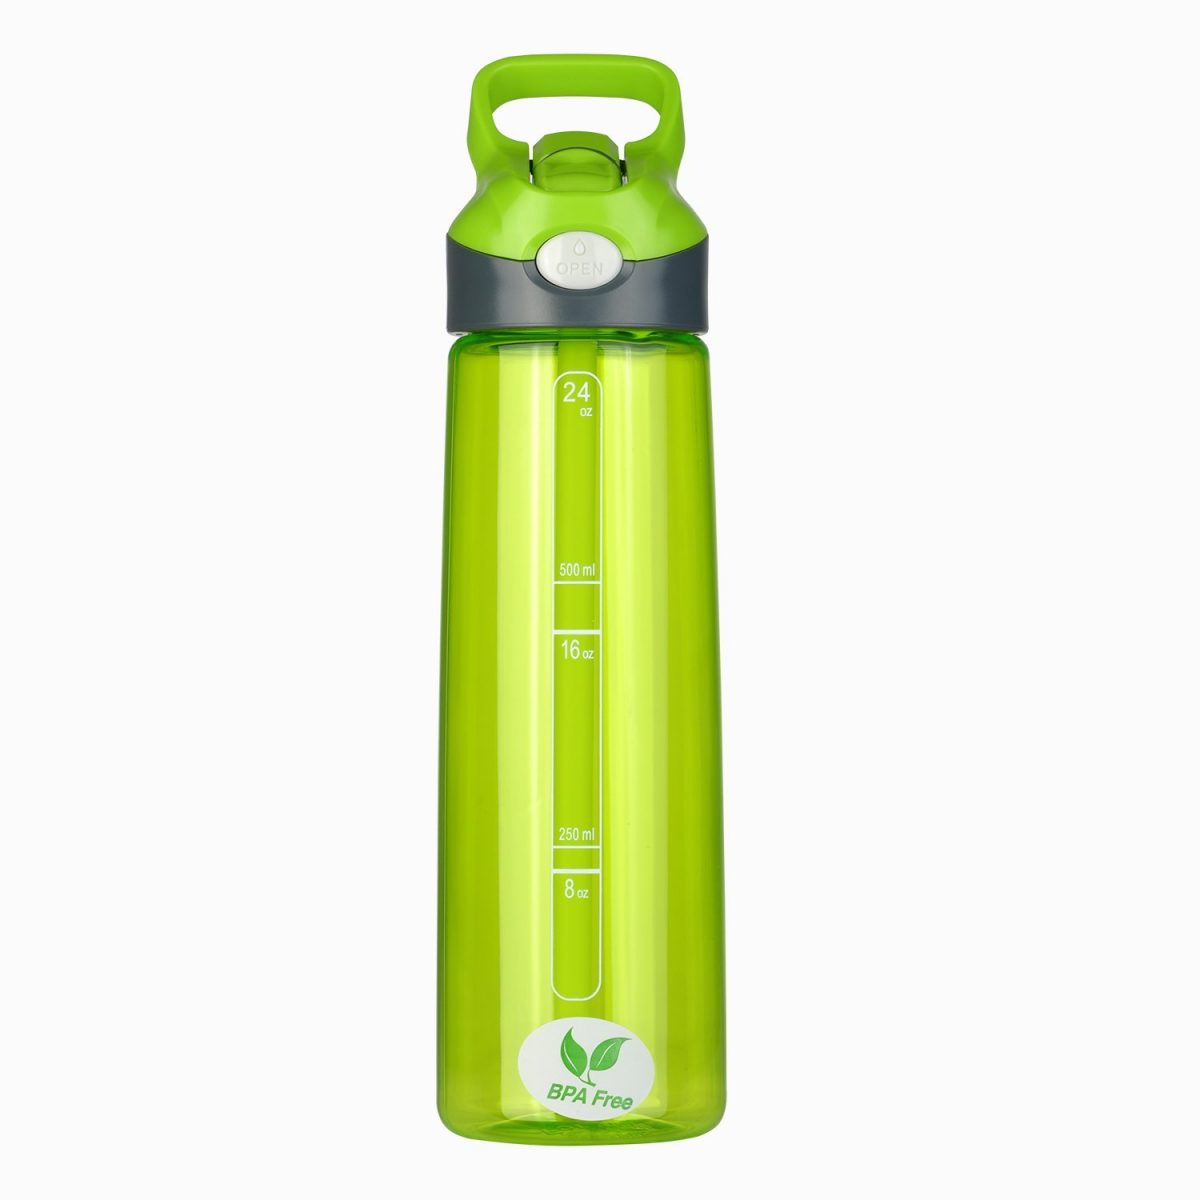 WIBO Sports Water Bottle – Your Partner for Camping and Fitness – $25.39